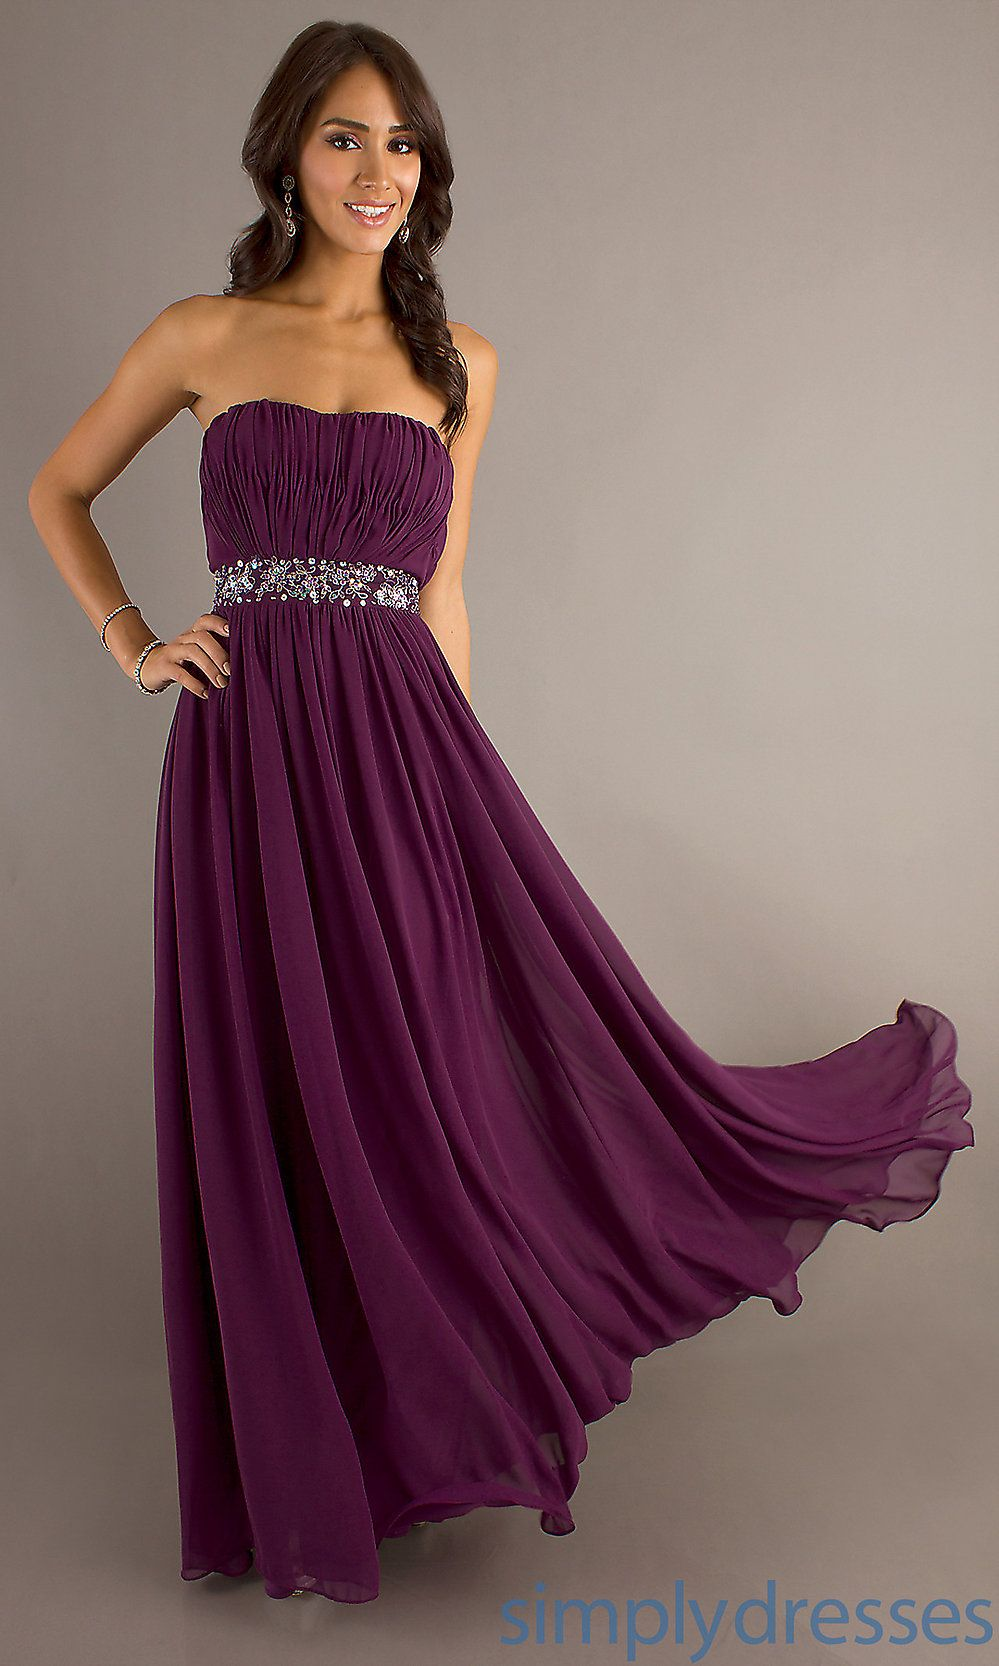 Wedding Plum Dresses long strapless evening gowns classic prom simply dresses dresses